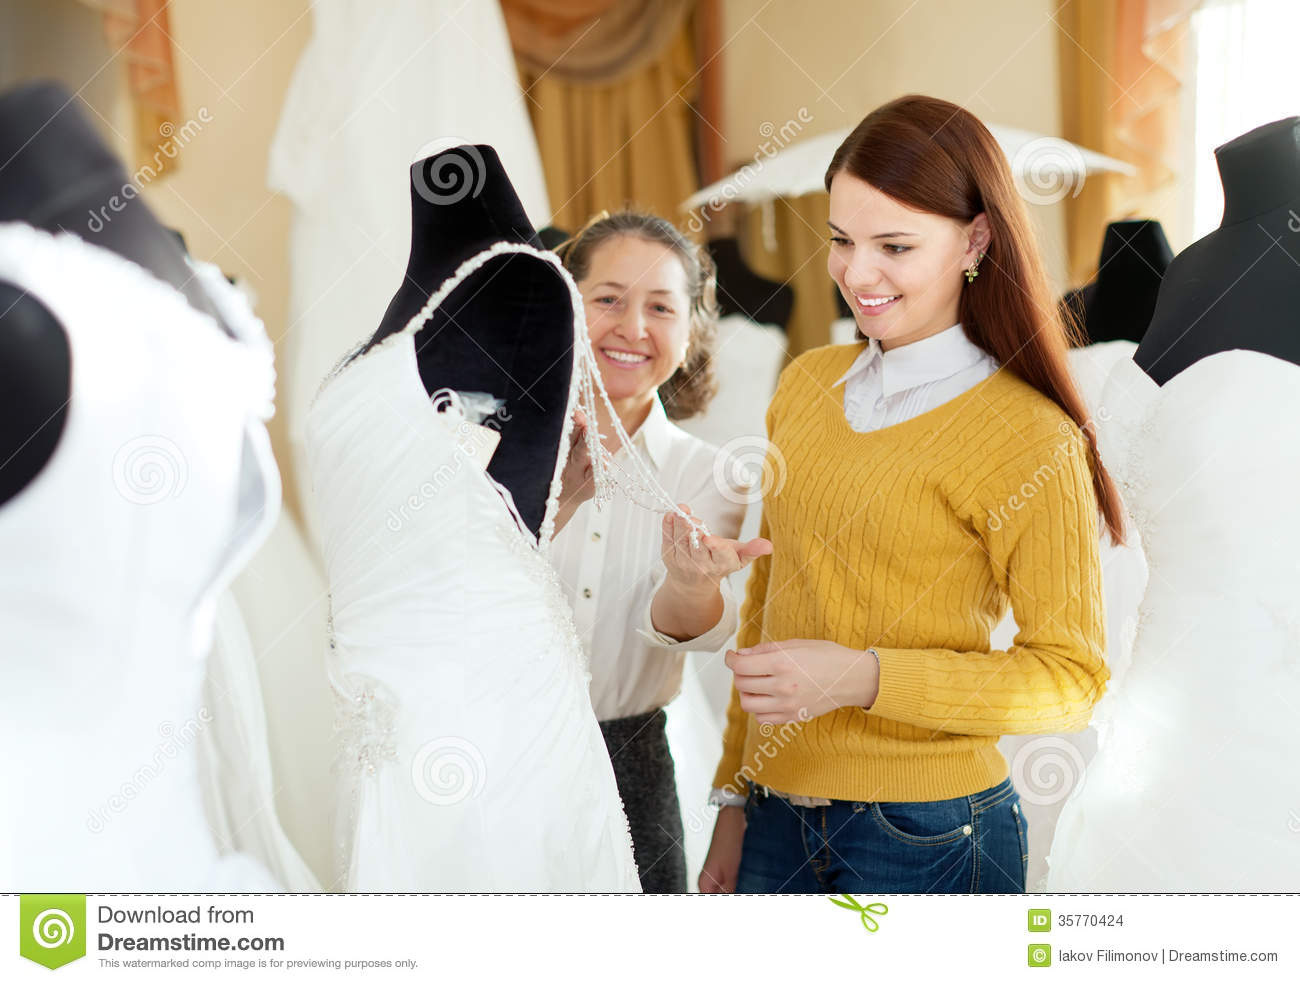 Wedding Photography Consultant: Pretty Bride Chooses Bridal Outfit At Wedding Store Stock